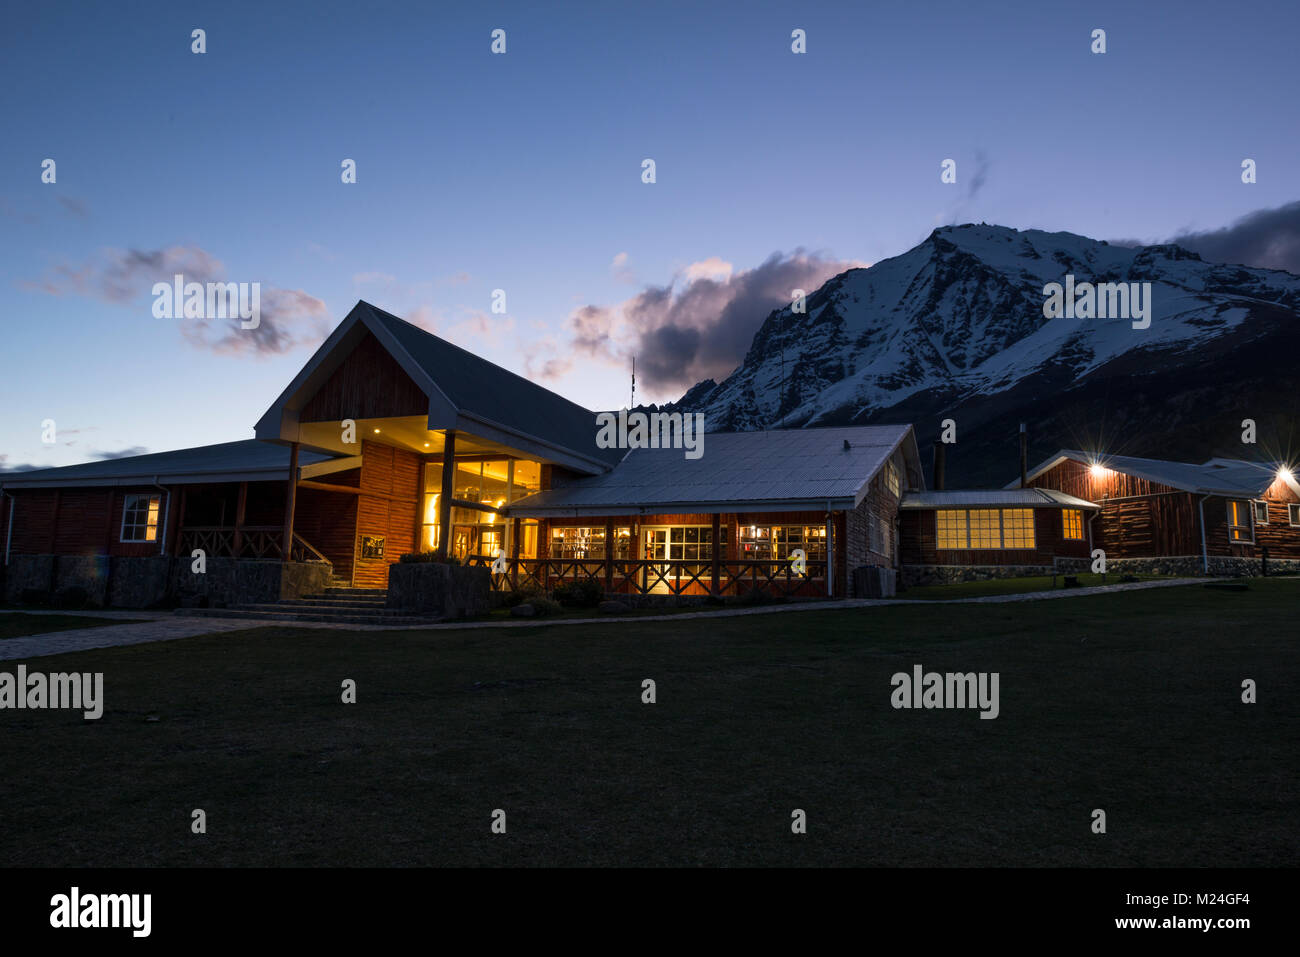 Hotel Las Torres, in Torres del Paine National Park, Chile - Stock Image